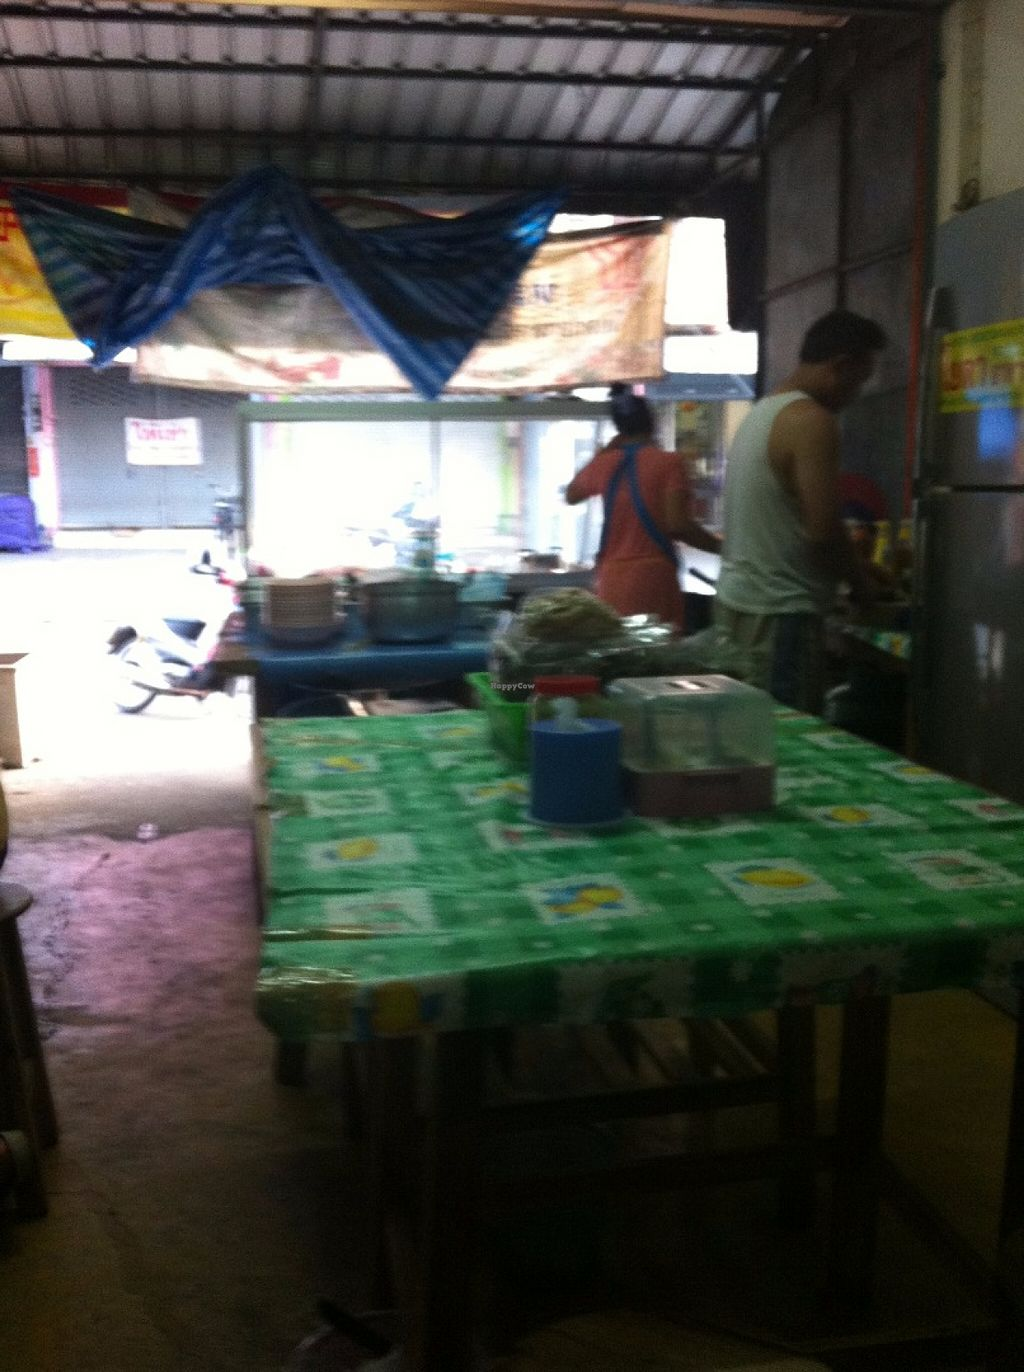 """Photo of CLOSED: Jay 99 - Youta Vegetarian Food  by <a href=""""/members/profile/alcozar"""">alcozar</a> <br/>Small family run Buisness <br/> June 9, 2016  - <a href='/contact/abuse/image/44927/153118'>Report</a>"""